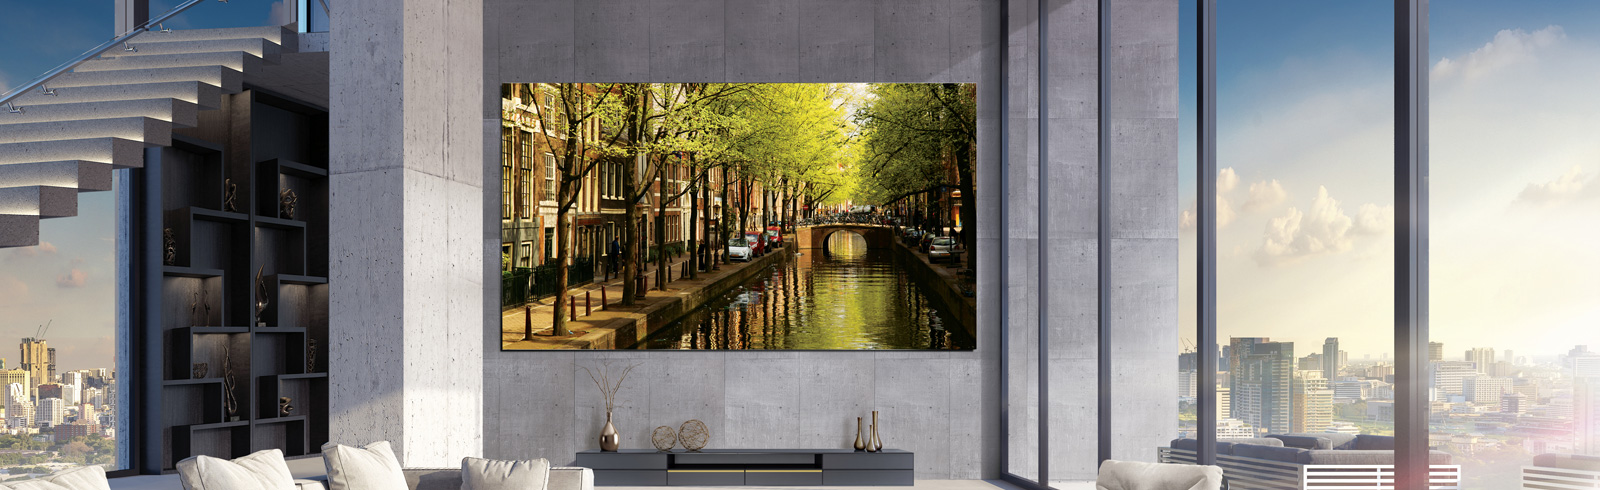 Samsung introduces its 82-inch QLED 8K Digital Signage at ISE 2019